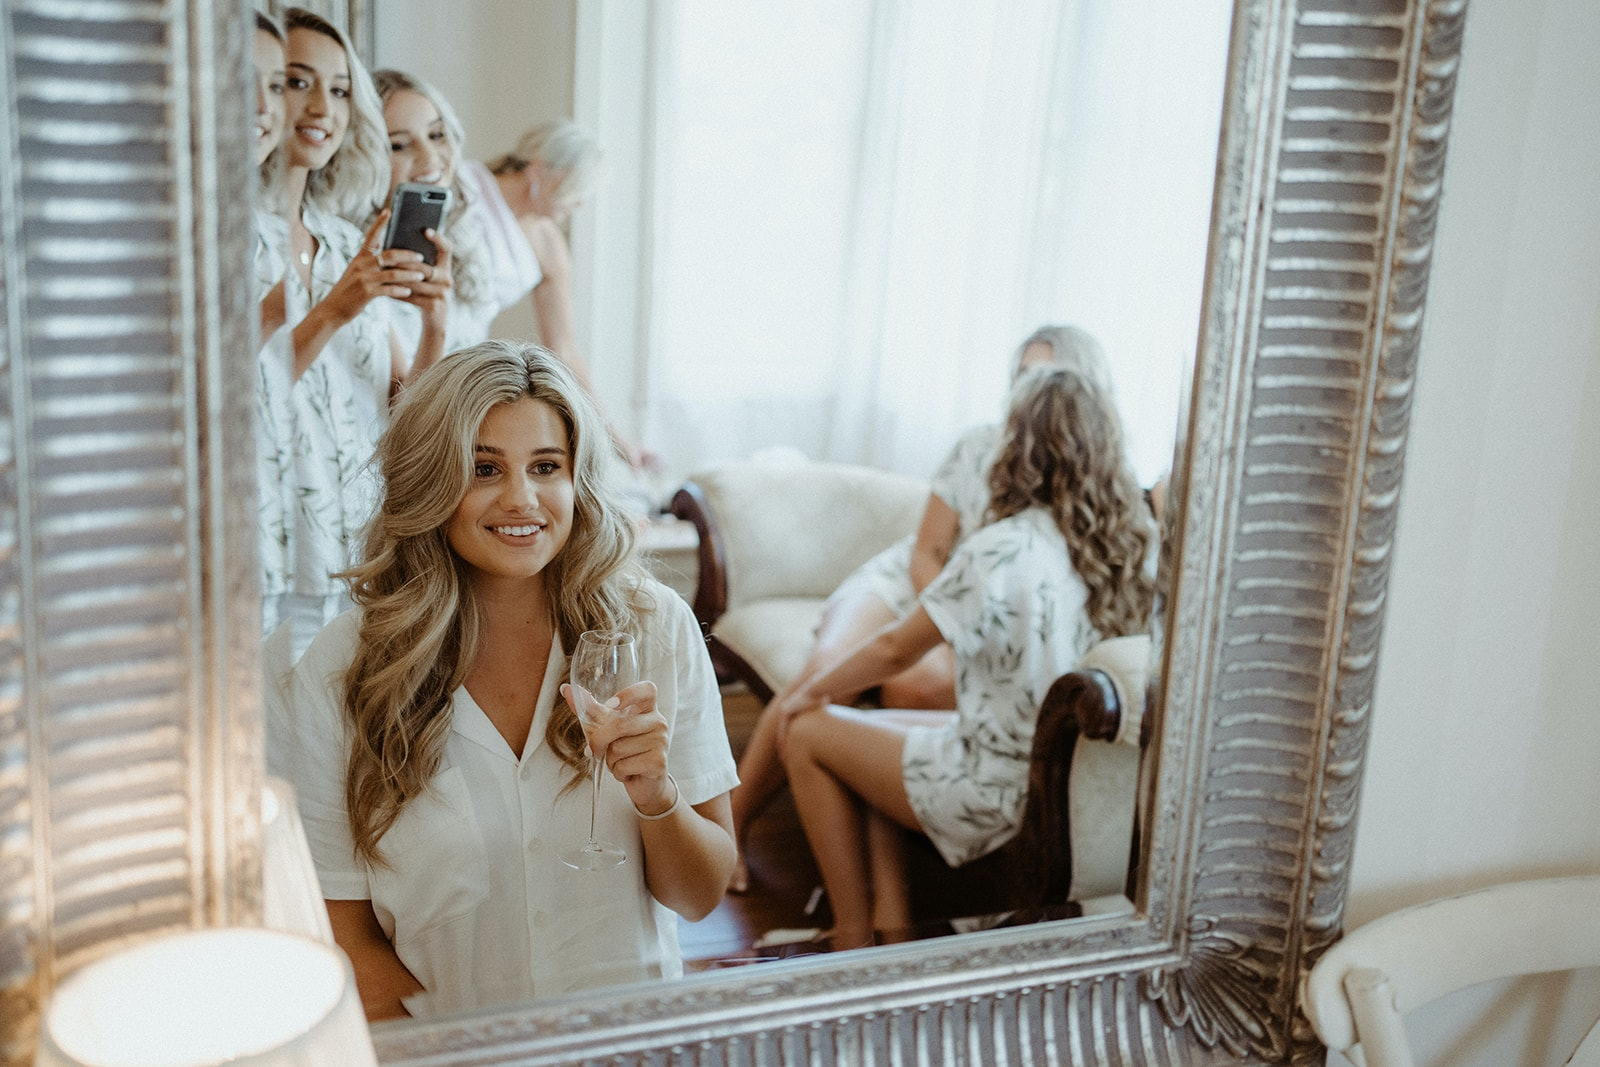 Bride looking in mirror holding a champagne glass